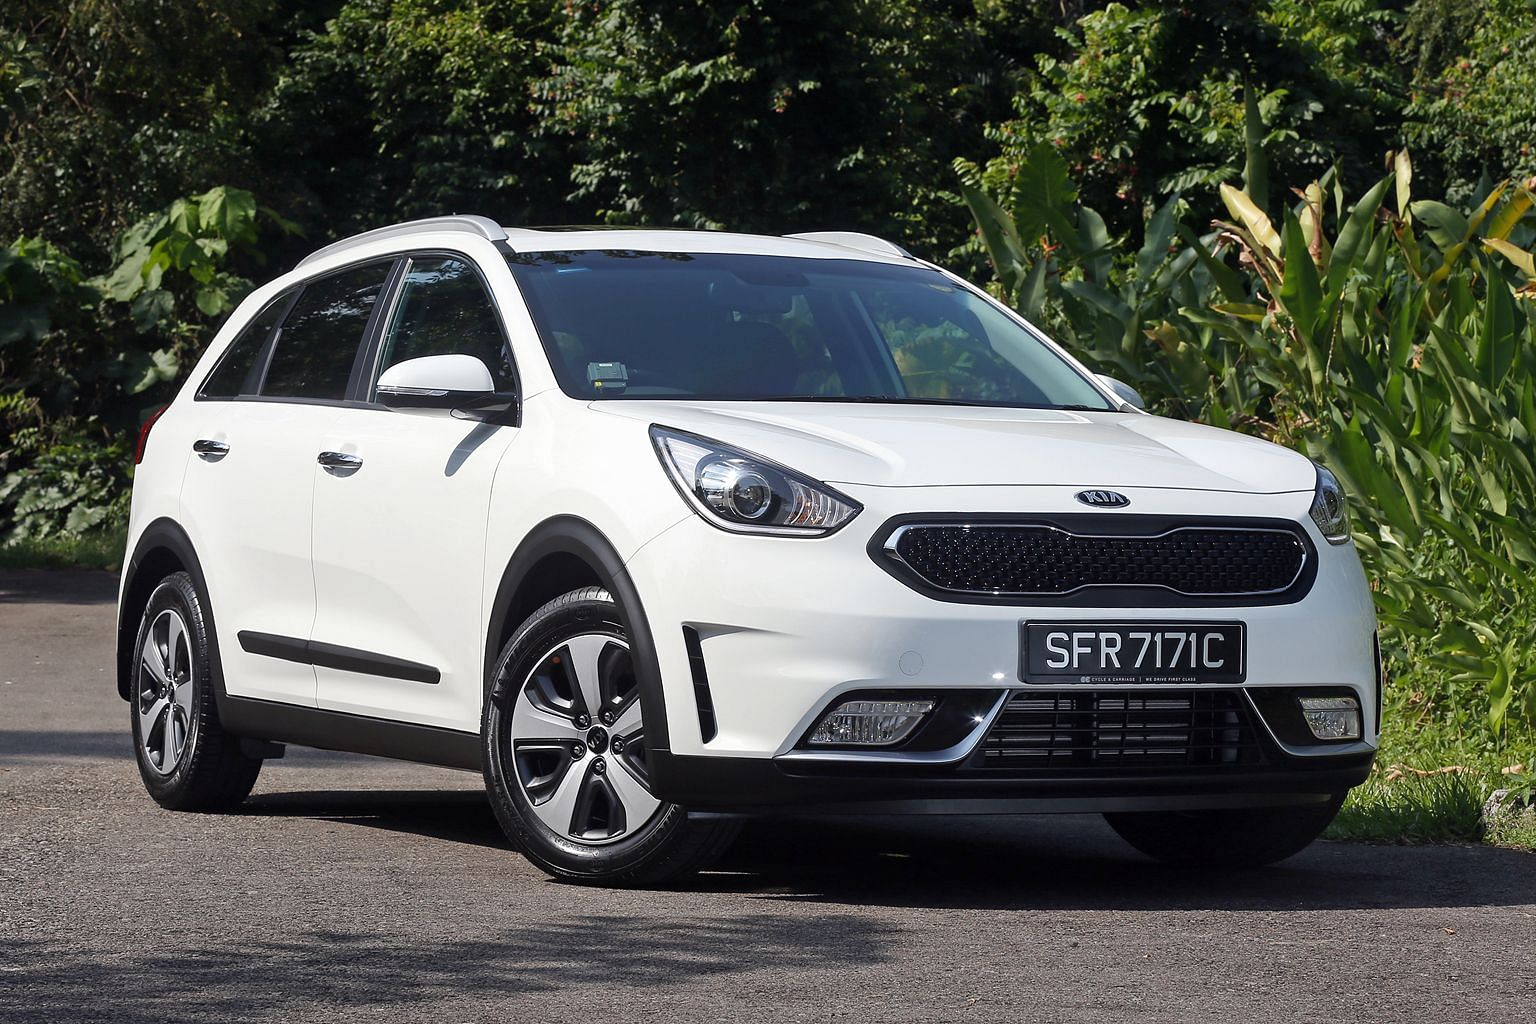 The Kia Niro delivers excellent ride and handling qualities.